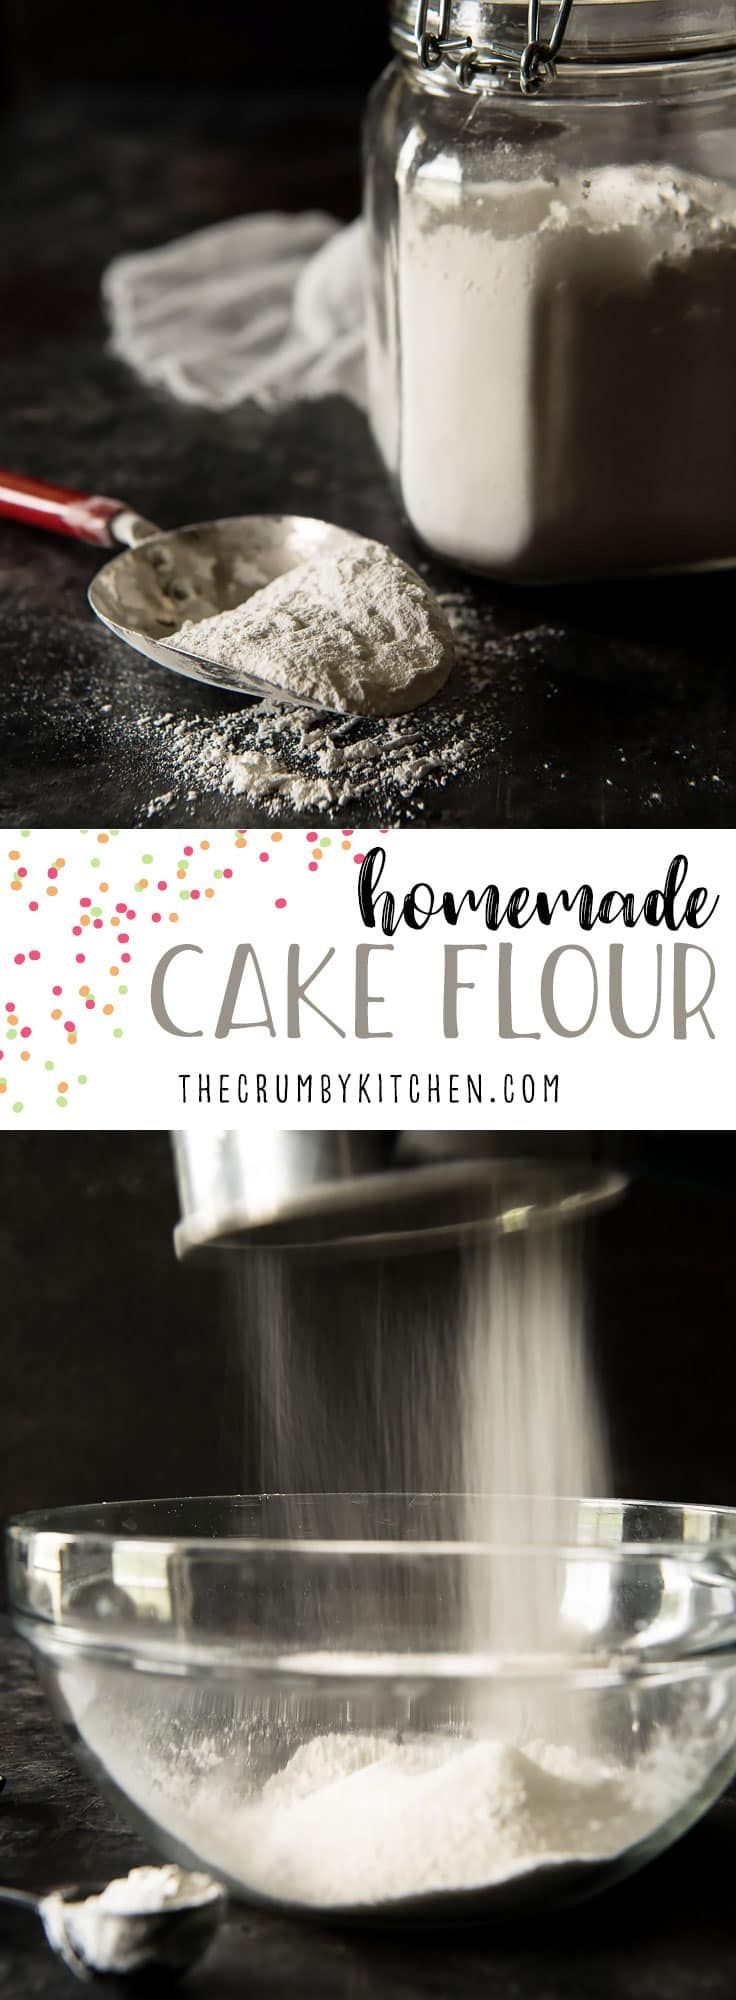 In need of cake flour, but don't have time to run to the store? Here's how to make a homemade cake flour substitute from two pantry staples. #homemade #DIY #cakeflour #recipe #baking